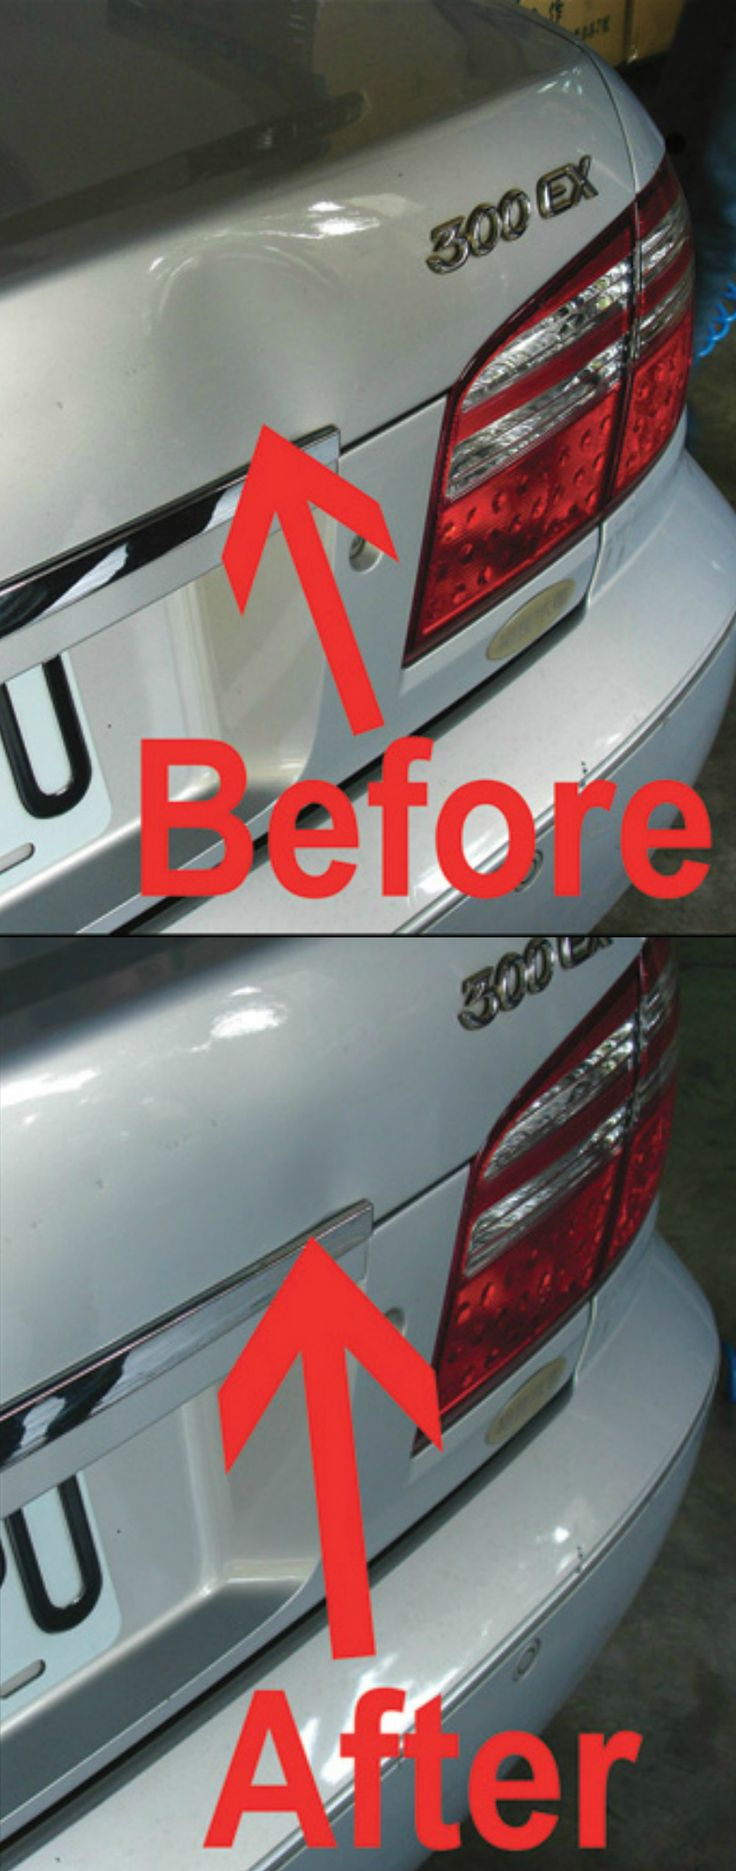 Do you have a car dent? Pull it out yourself with the pneumatic dent puller and save money!